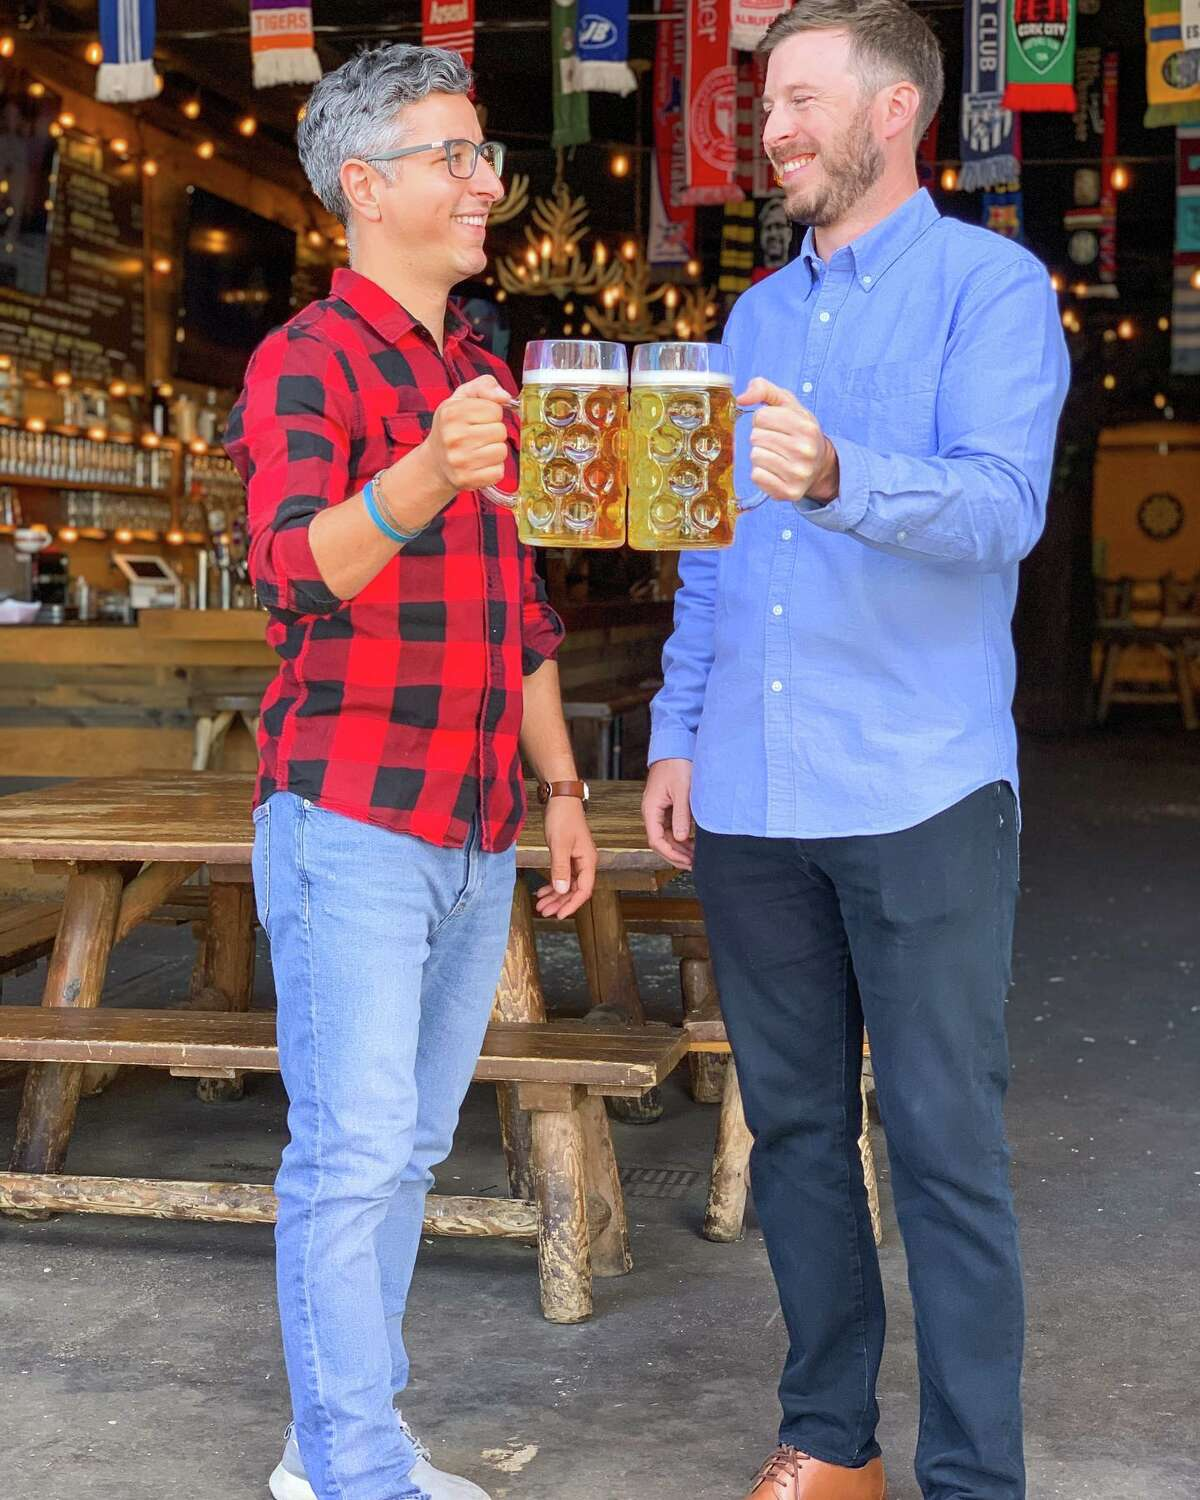 Sam Leamy, left, and Dan Henley are the new owners of the Wolff' Biergarten brand. The deal, initially announced in January by Wolff's founder Matt Baumgartner, was finalized on Oct. 1. Leamy was a longtime manager manager for the company. He and Henley, shown at the original Wolff's, in Albany's warehouse district, have taken over that location and the Wolff's in Schenectady; they will be acquiring the Syracuse Wolff's in the future. Baumgartner retains ownership of the buildings, and this past spring he converted the Troy Wolff's into Troy Beer Garden, which he still runs.